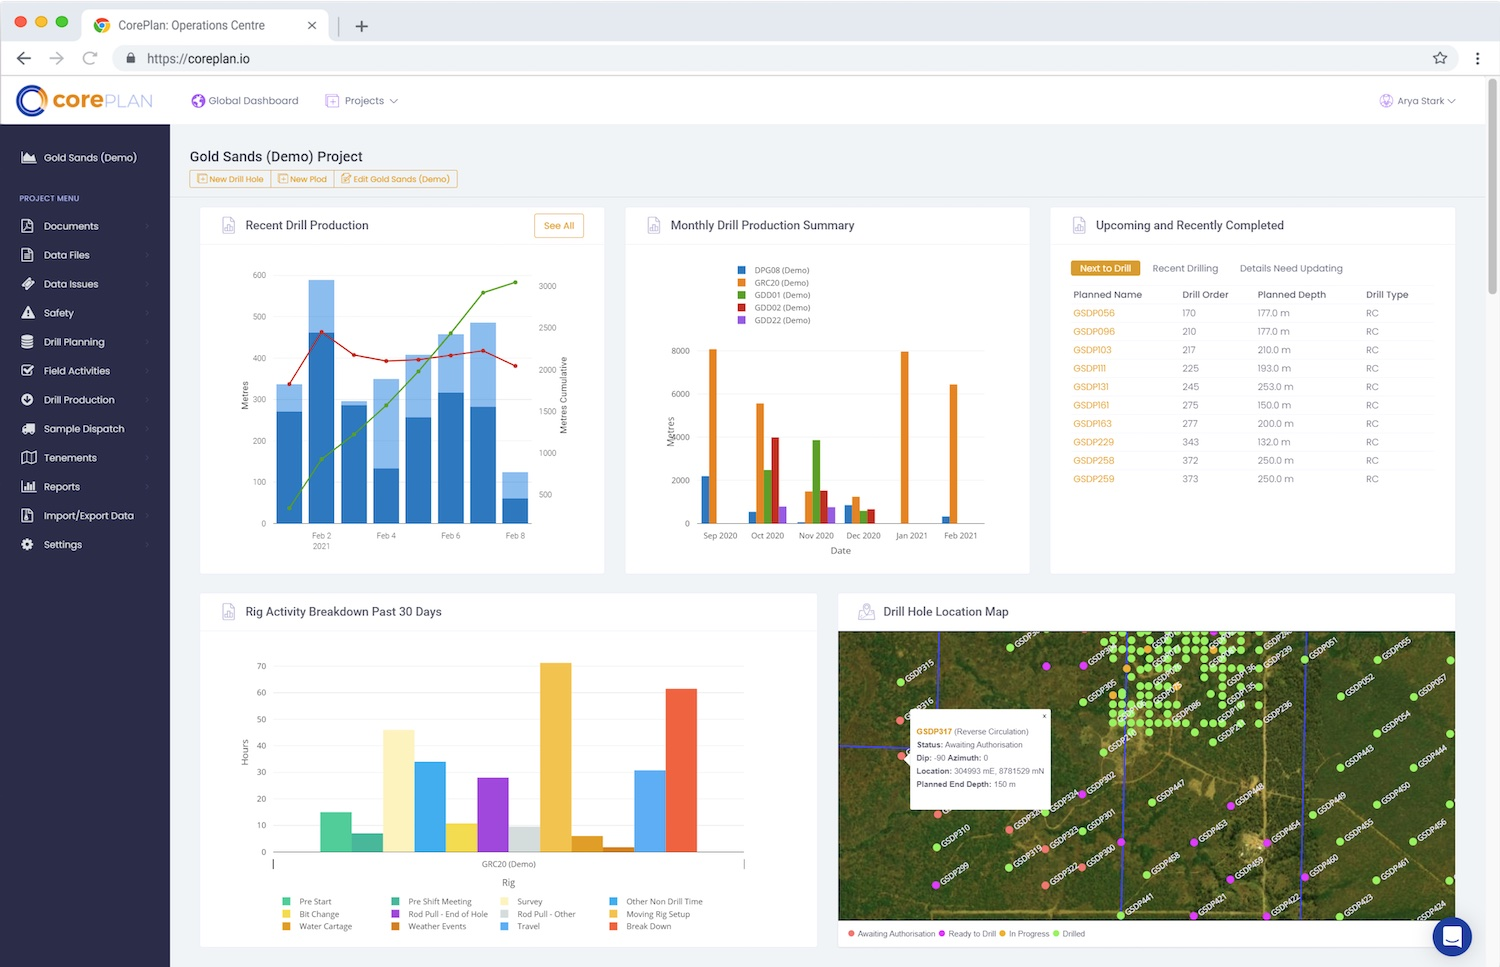 Screenshot of coreplan's Project Dashboard for exploration mining companies showing rig activity breakdown, monthly drill production, drill hole location and upcoming drill holes with planned depth and drill type